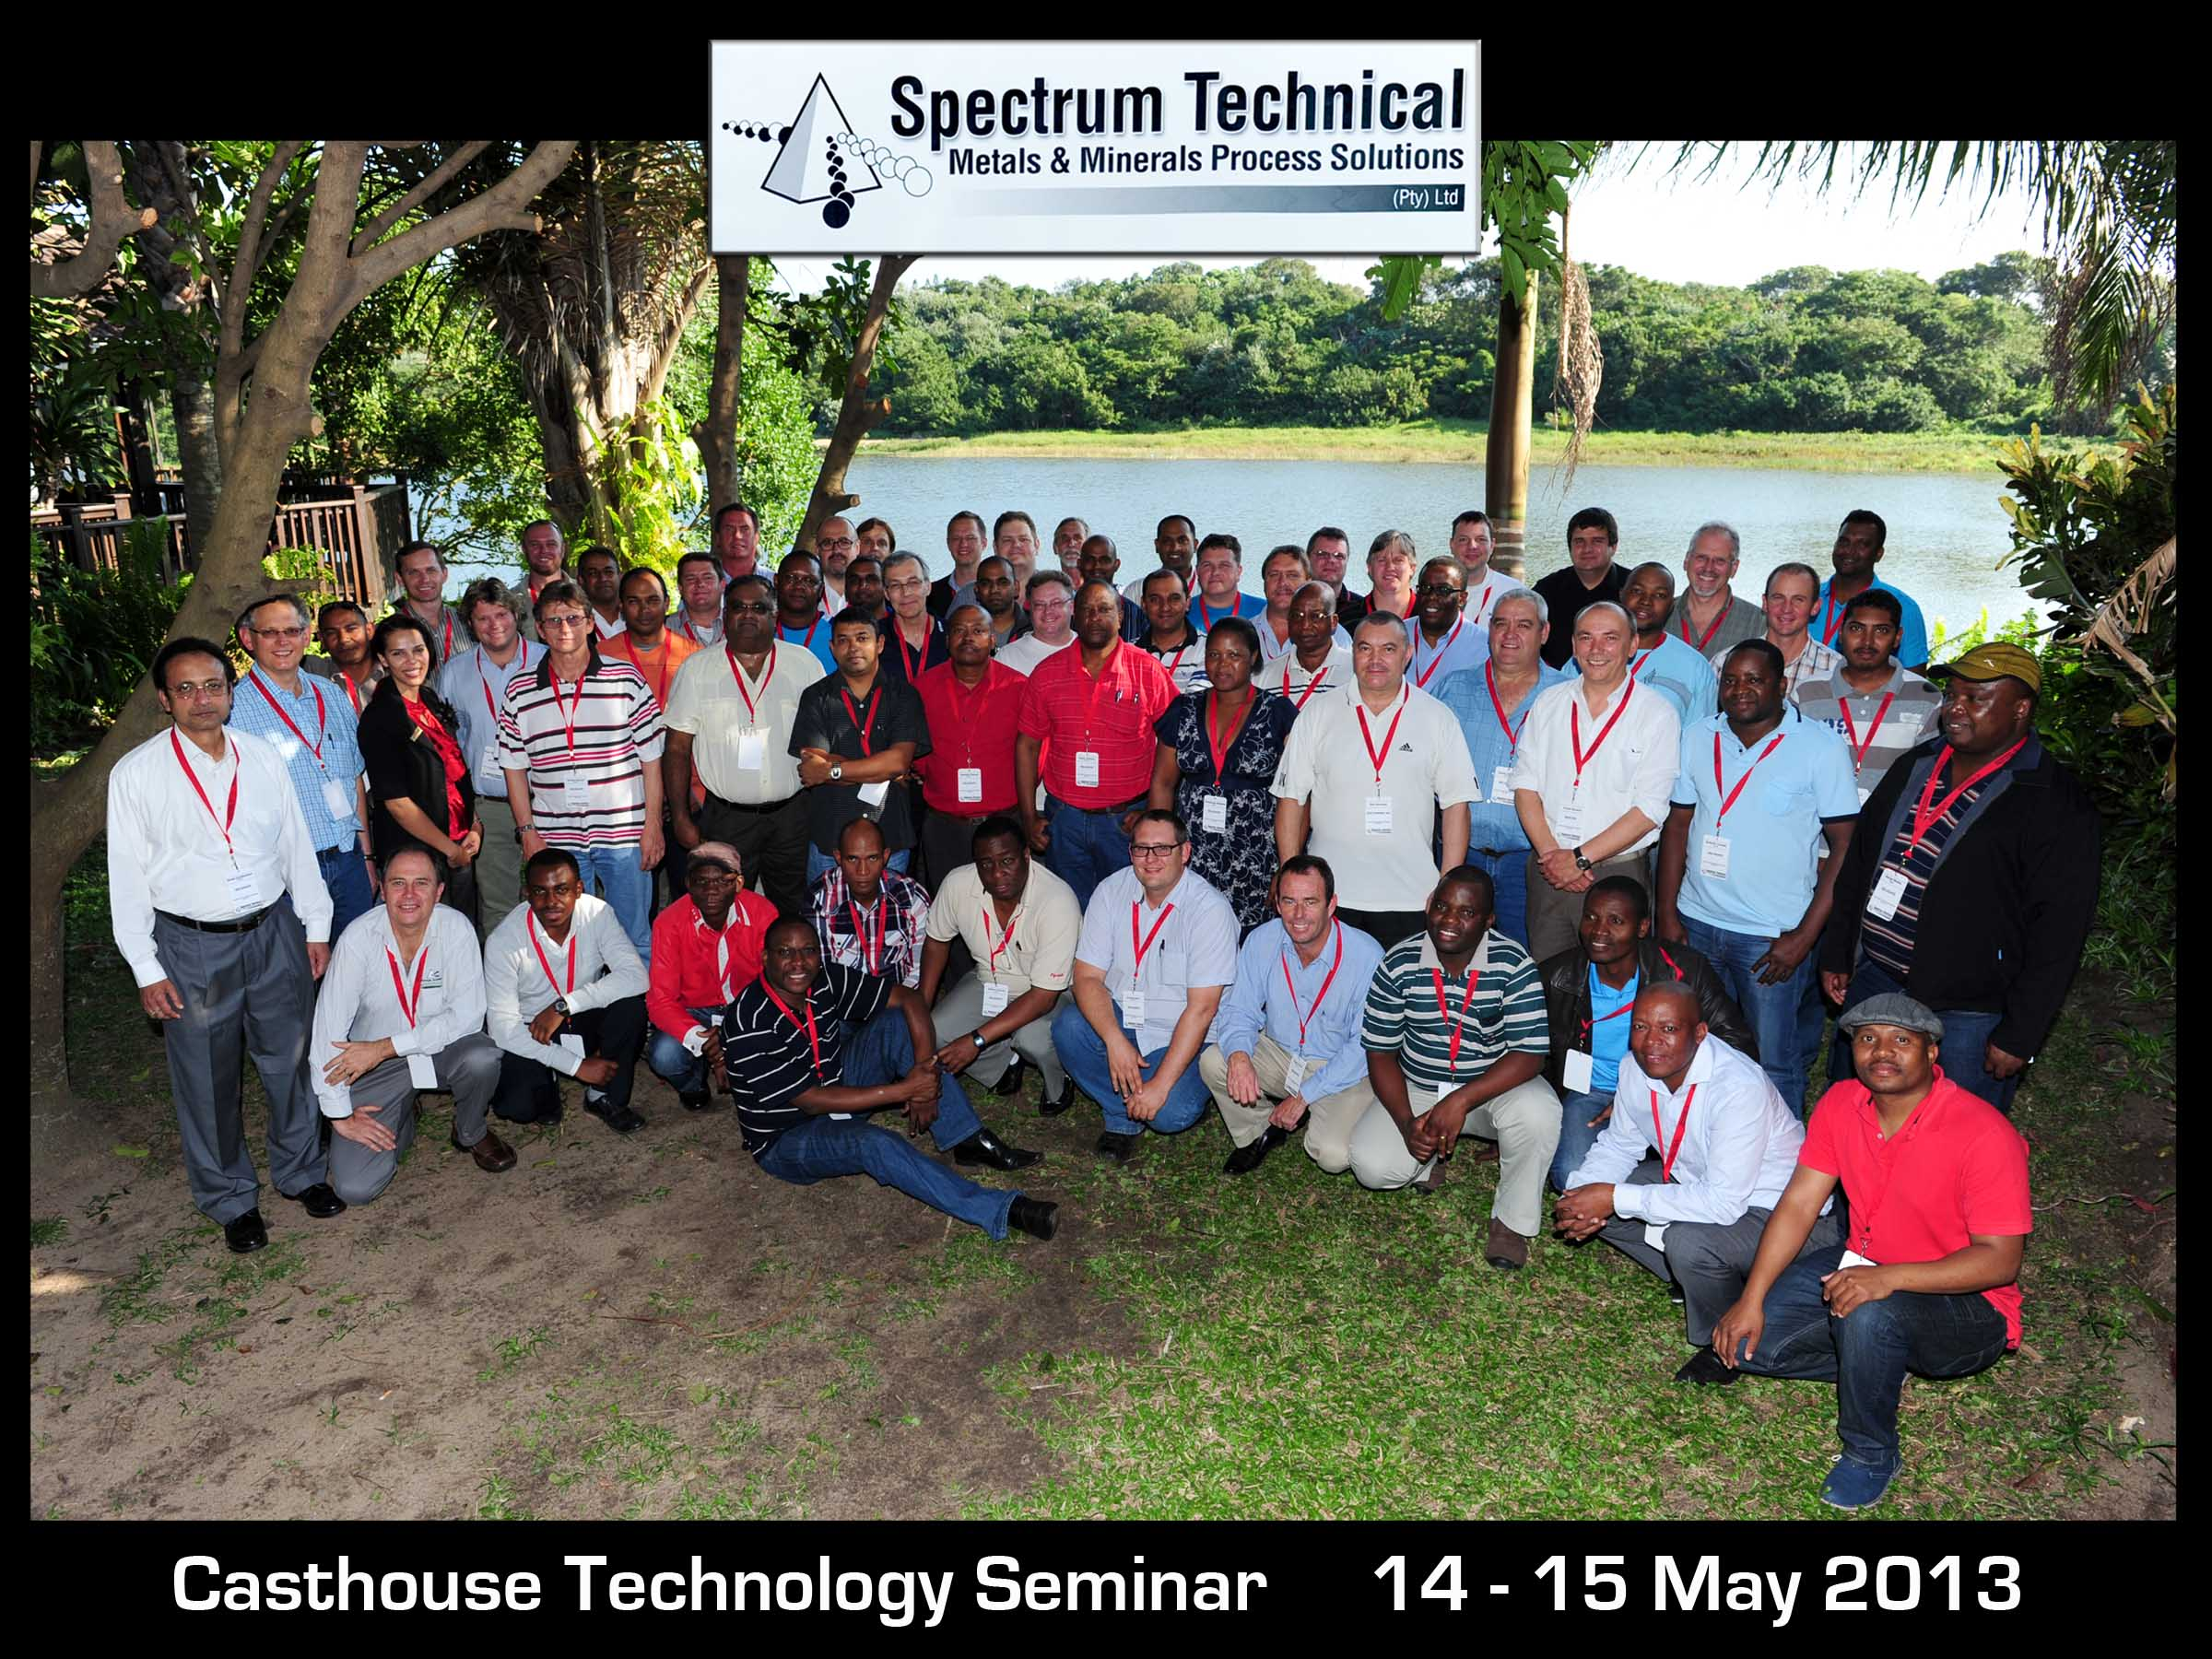 CASTHOUSE TECHNOLOGY SEMINAR GROUP